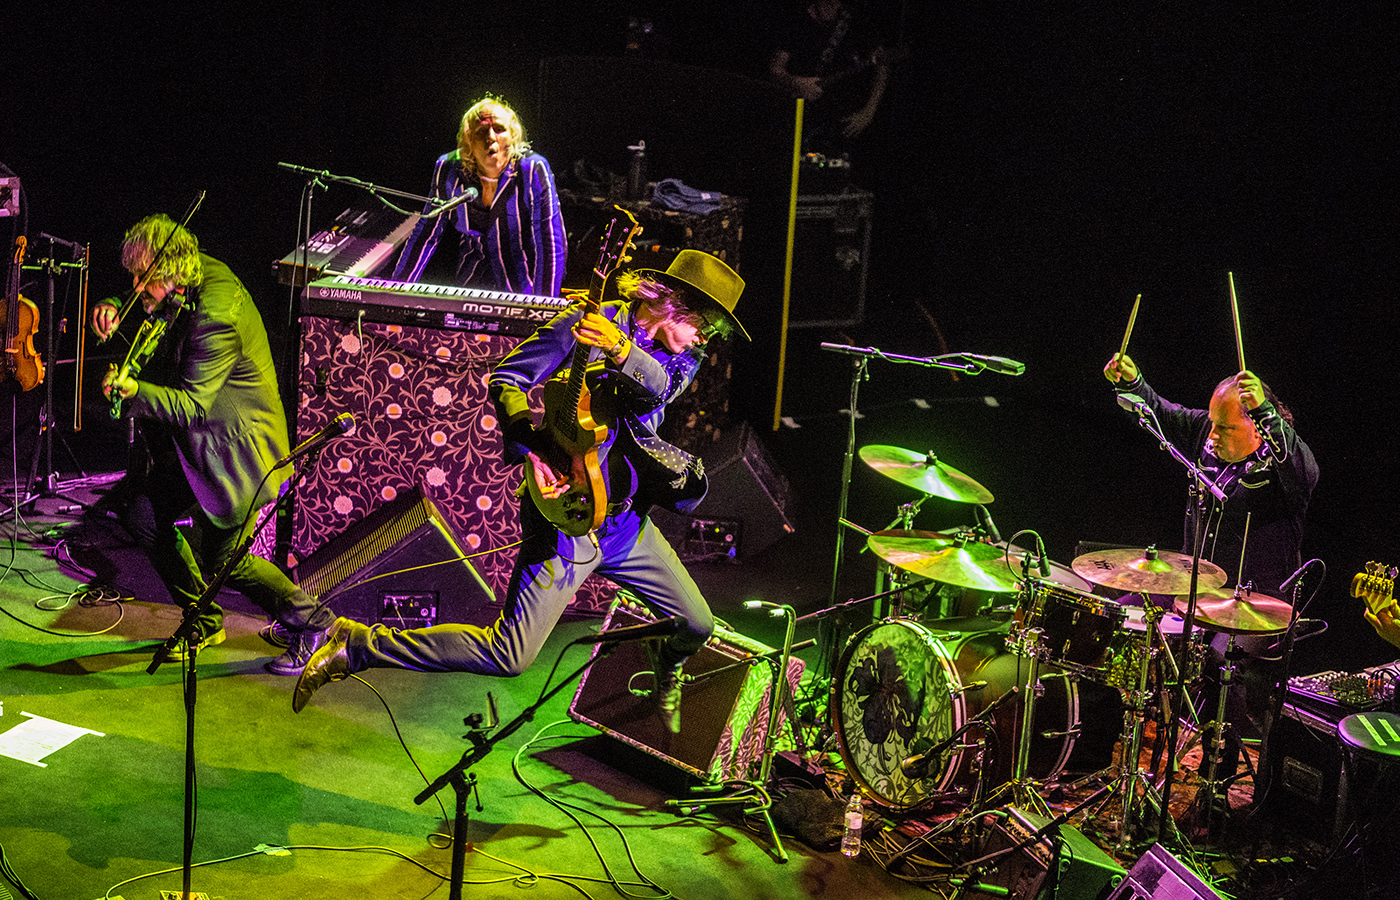 Line-up compleet met o.a. The Waterboys en Duff McKagan ft. Shooter Jennings